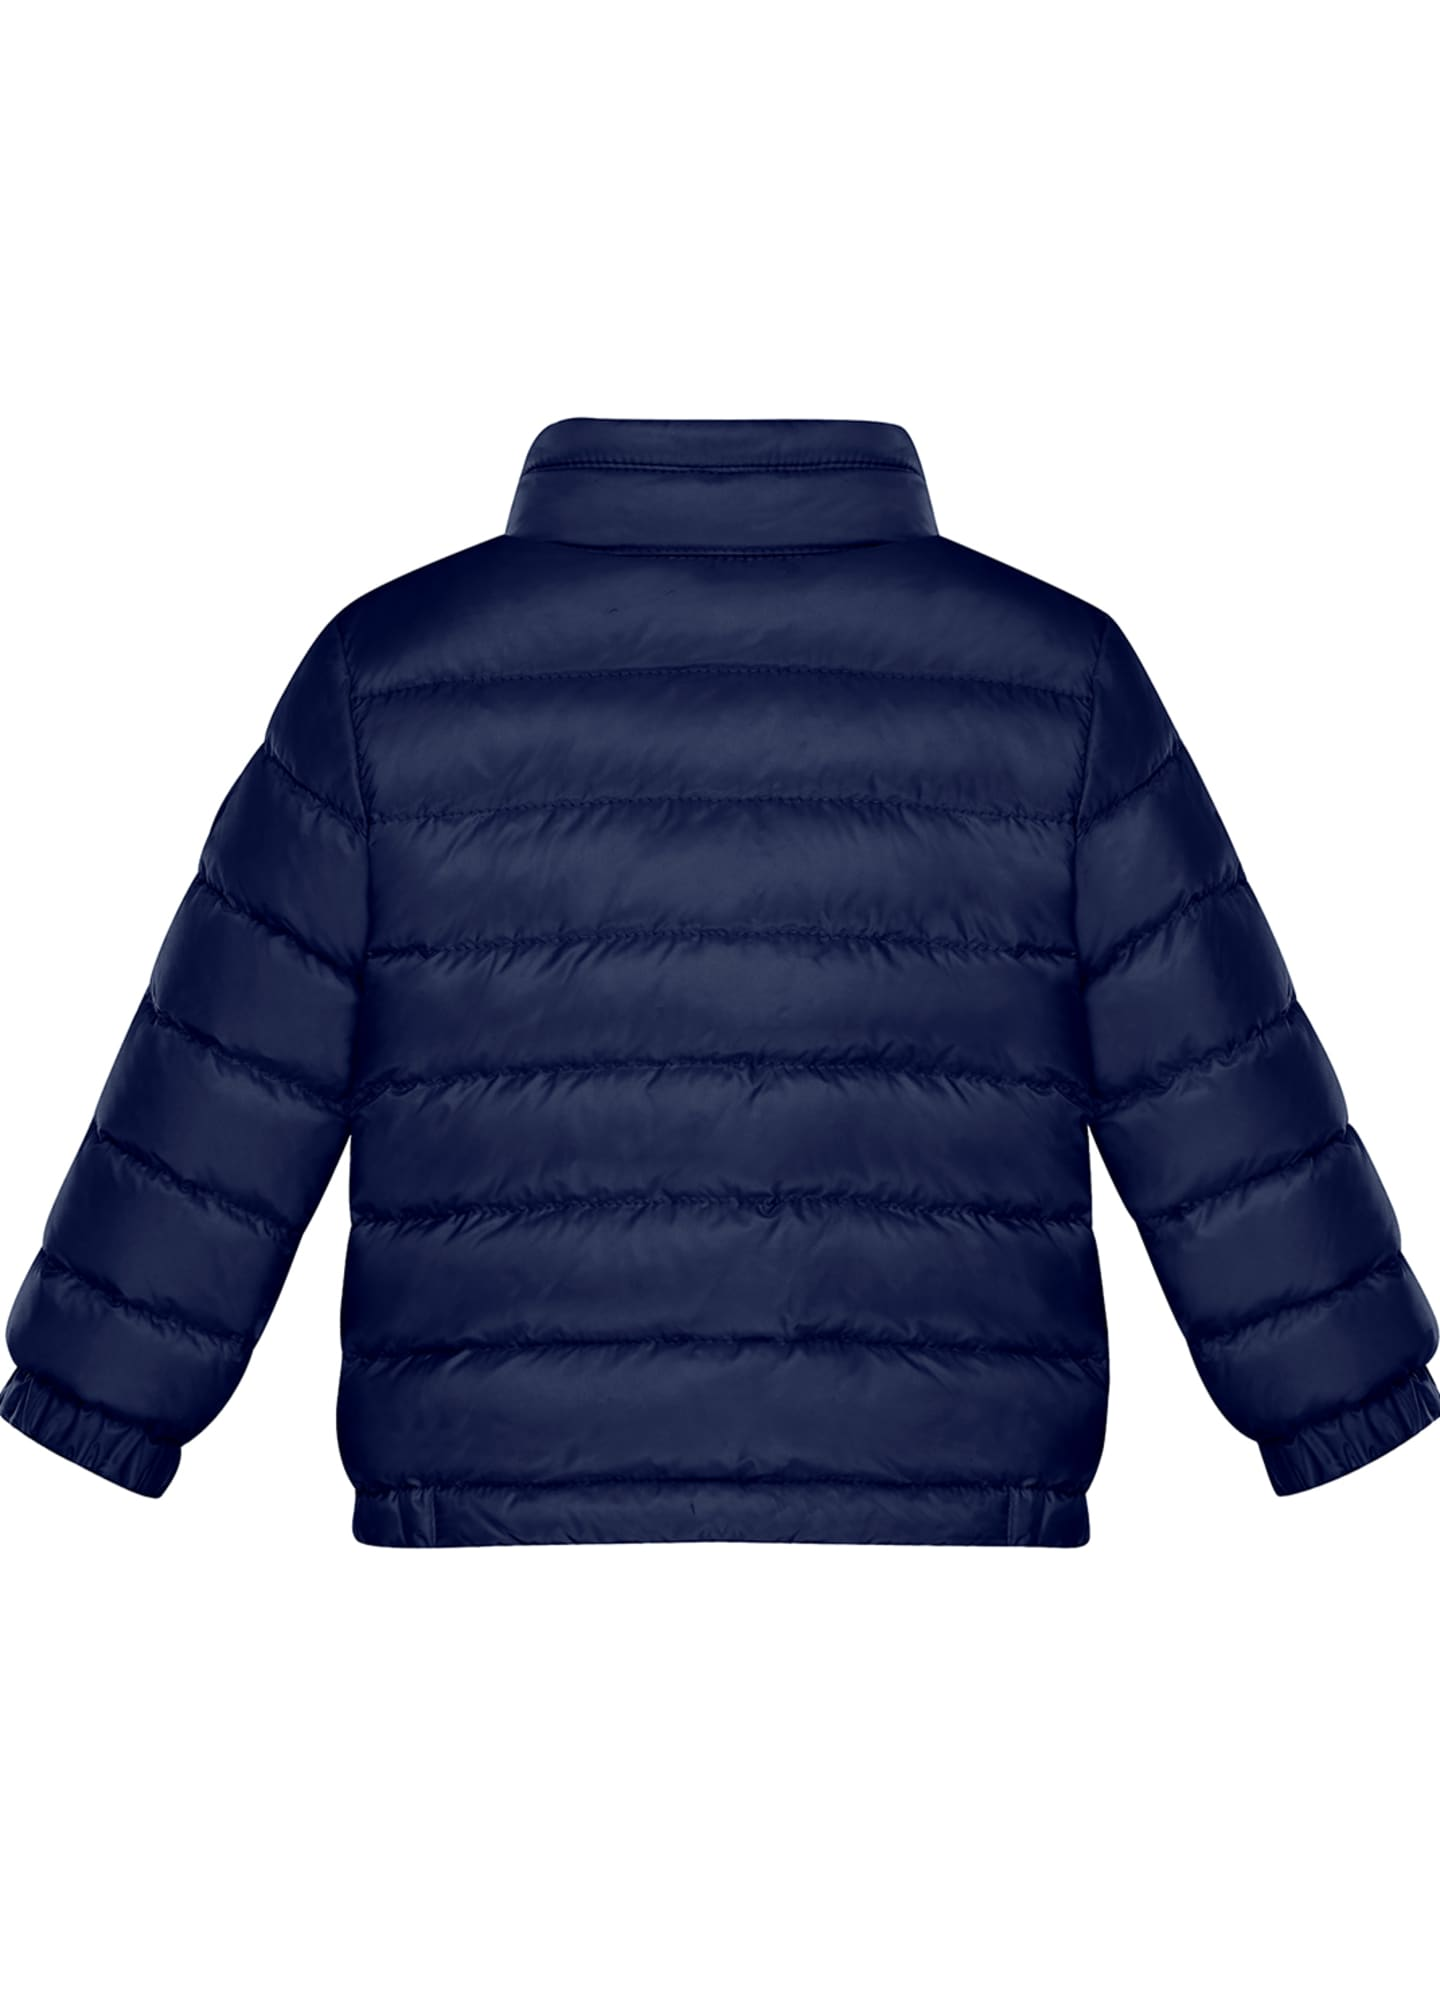 Image 2 of 2: Kid's Acorus Stand Collar Quilted Jacket, Size 9M-3